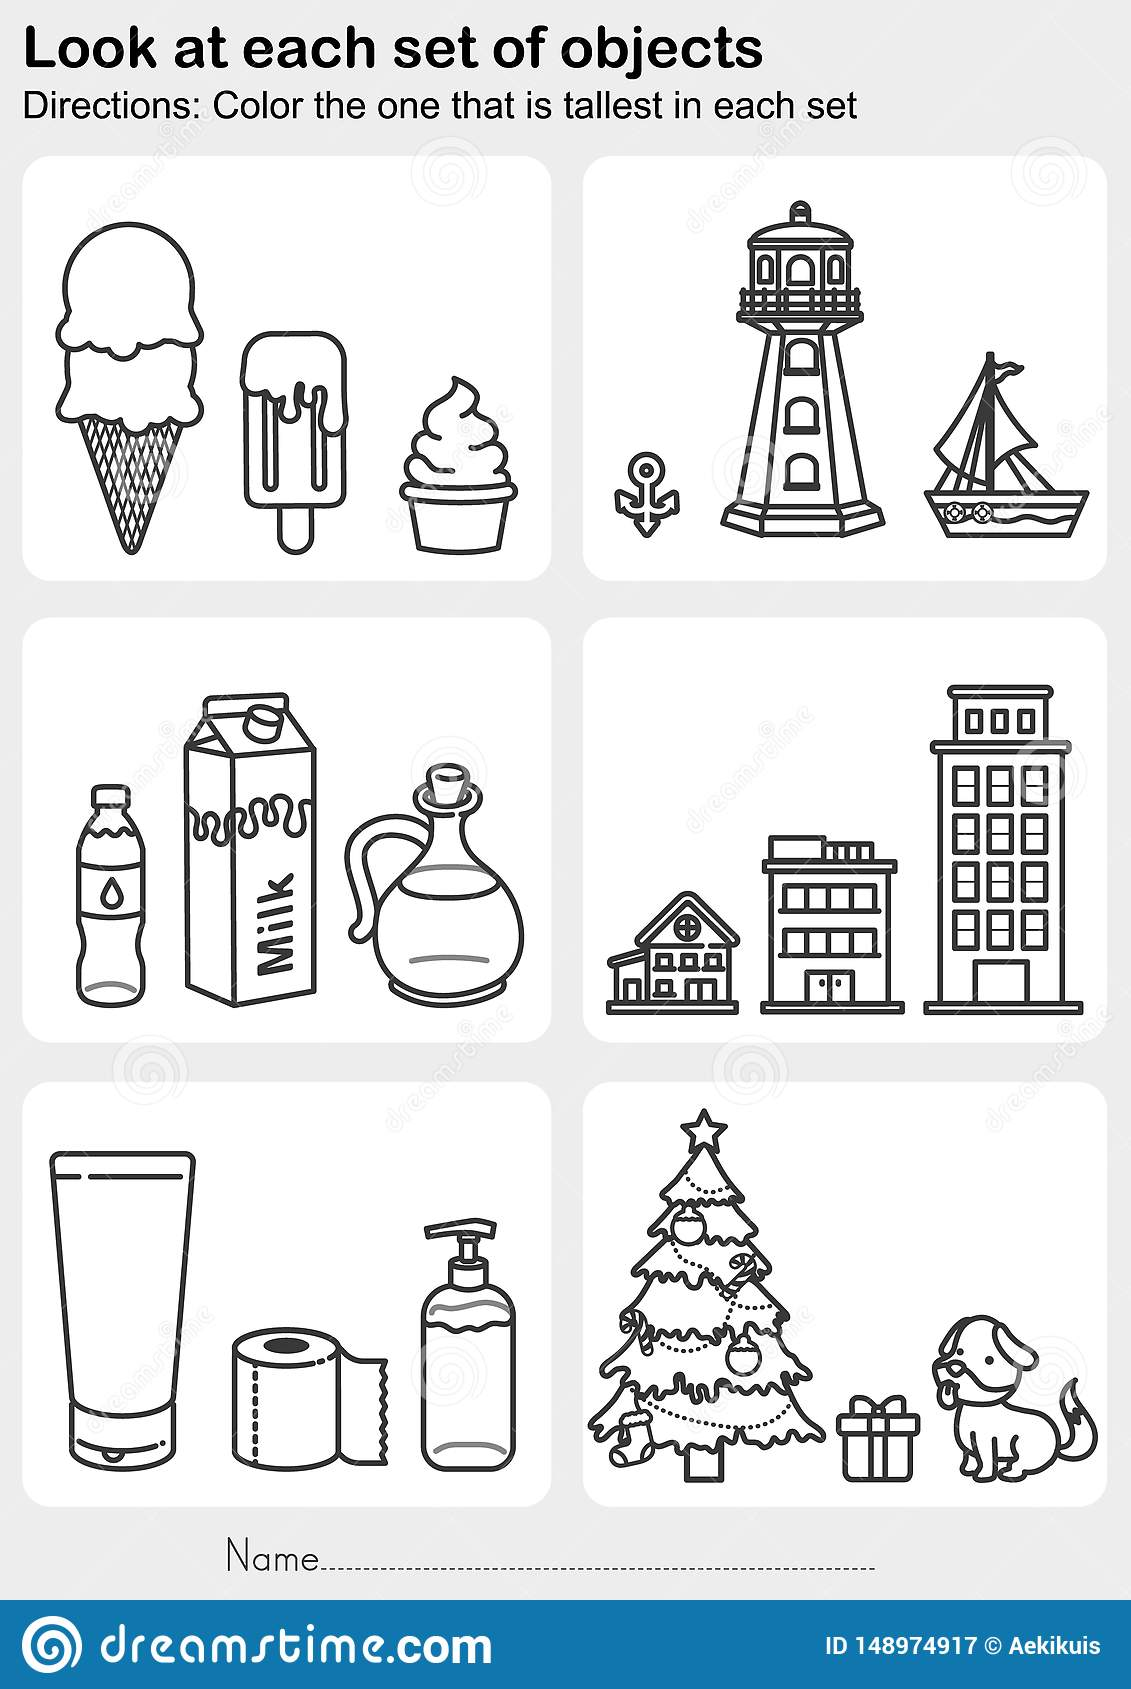 Look At Each Set Of Objects